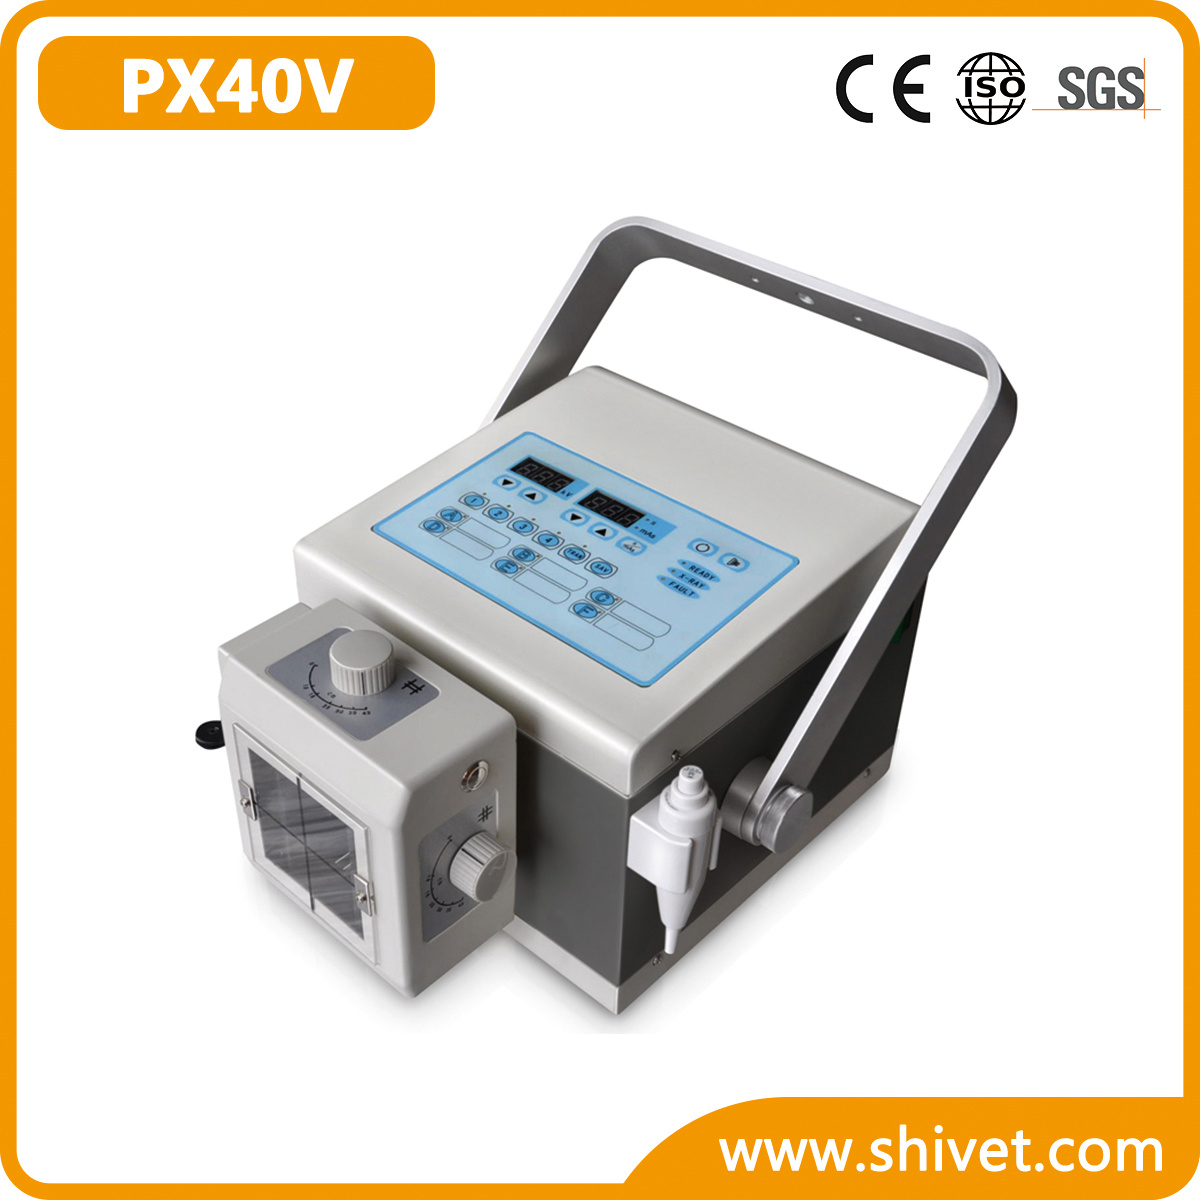 Portable High-Frequency Veterinary X-ray Machine (PX40V)